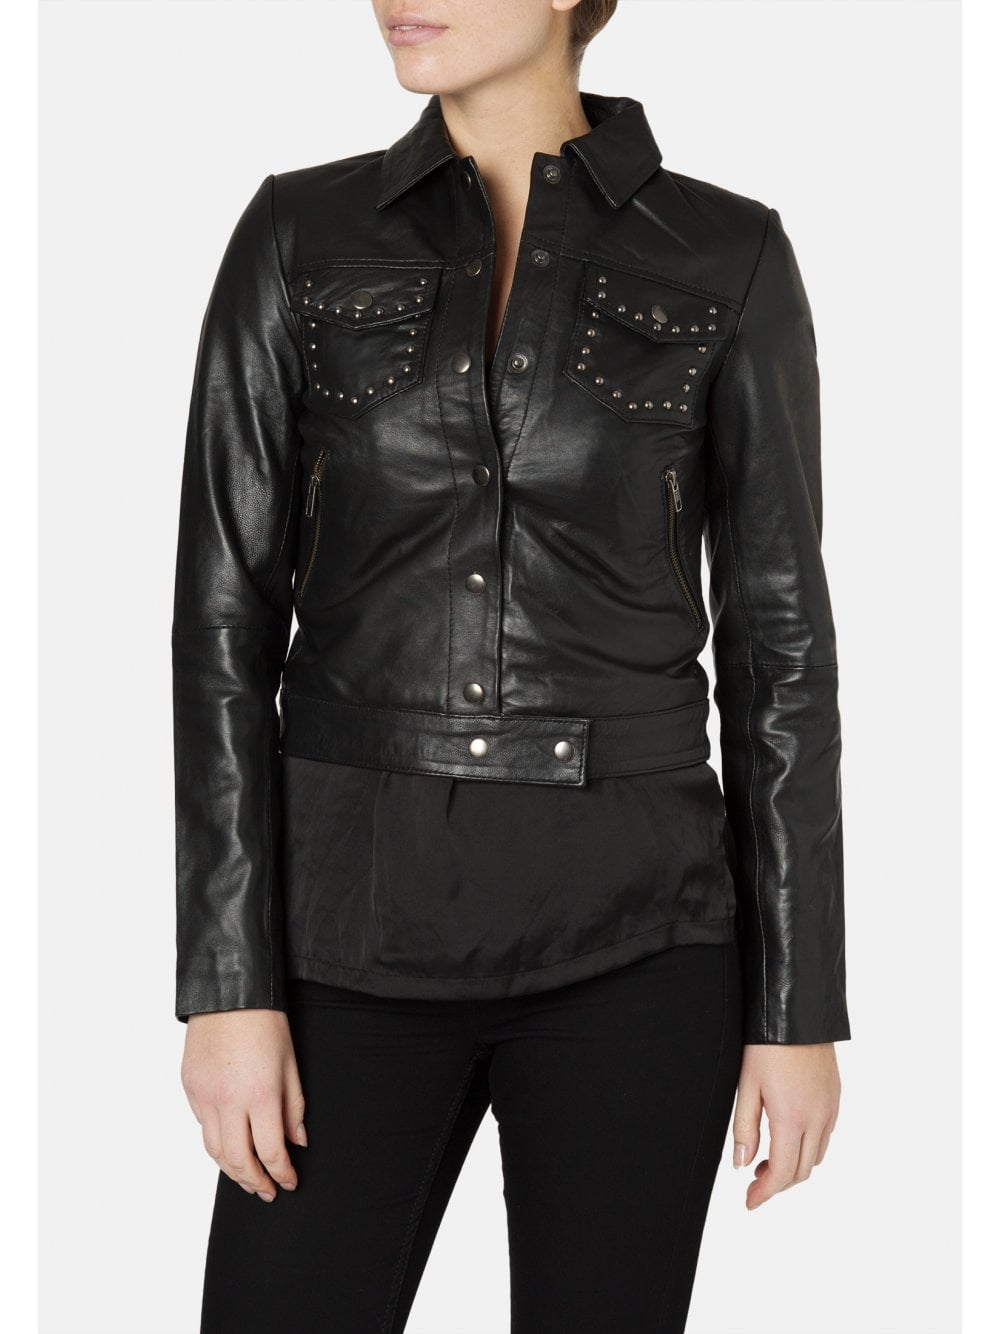 ae2611d550a0 Morton Western Studded Leather Jacket - SHOP WOMEN from Muubaa UK